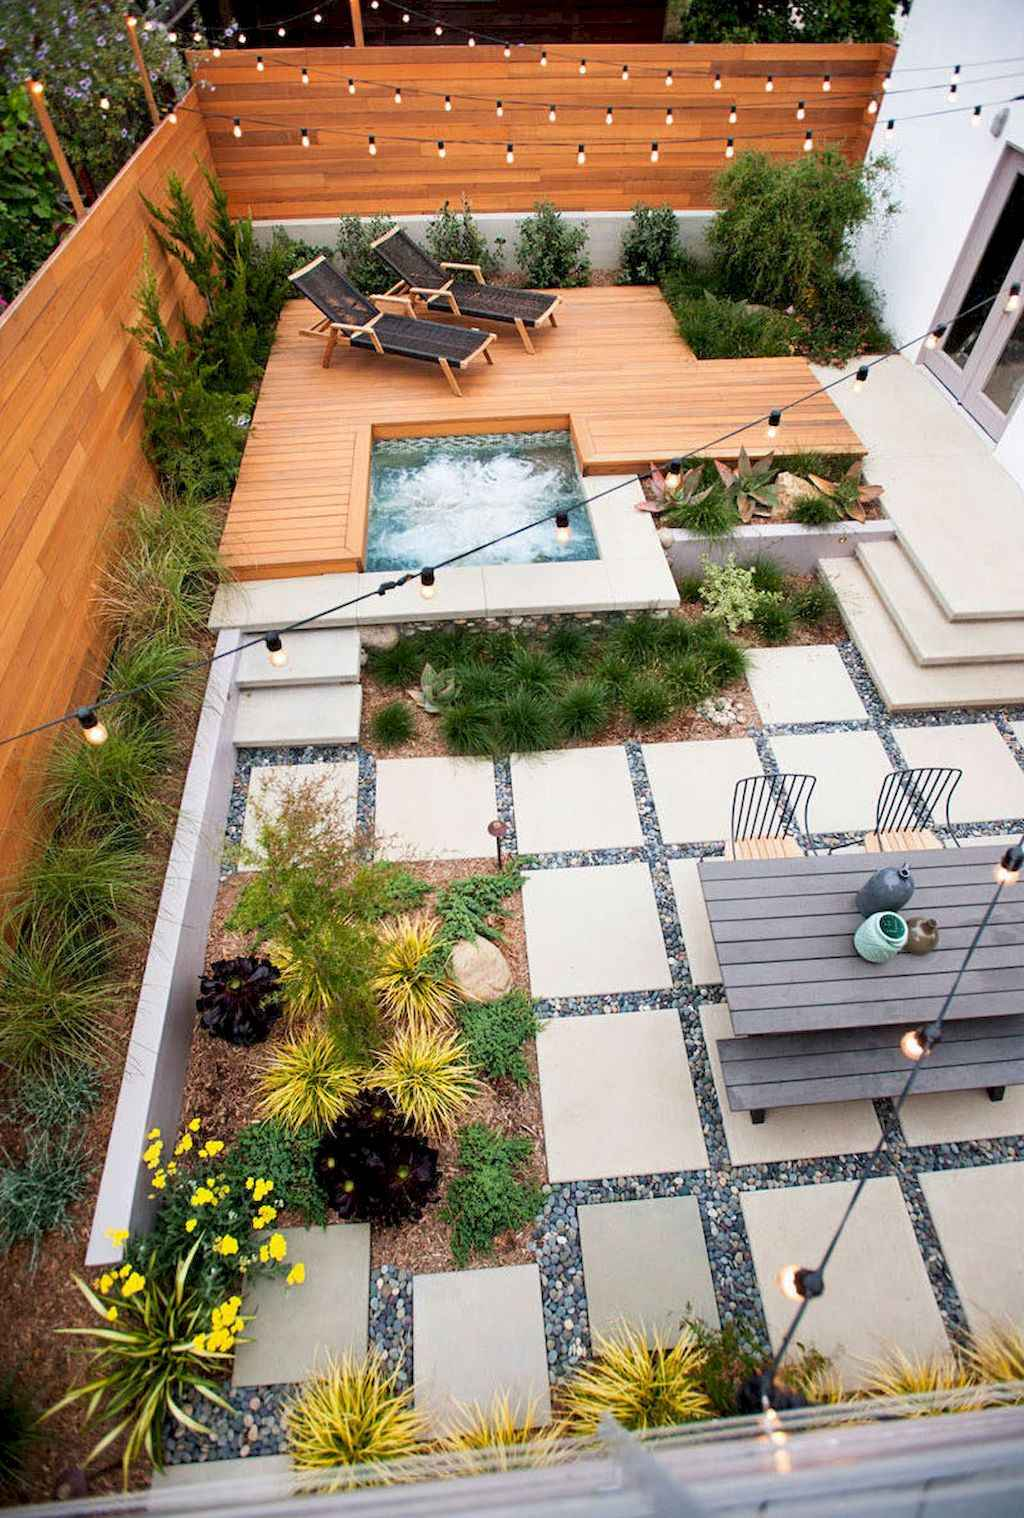 Small backyard landscaping ideas on a budget (3)